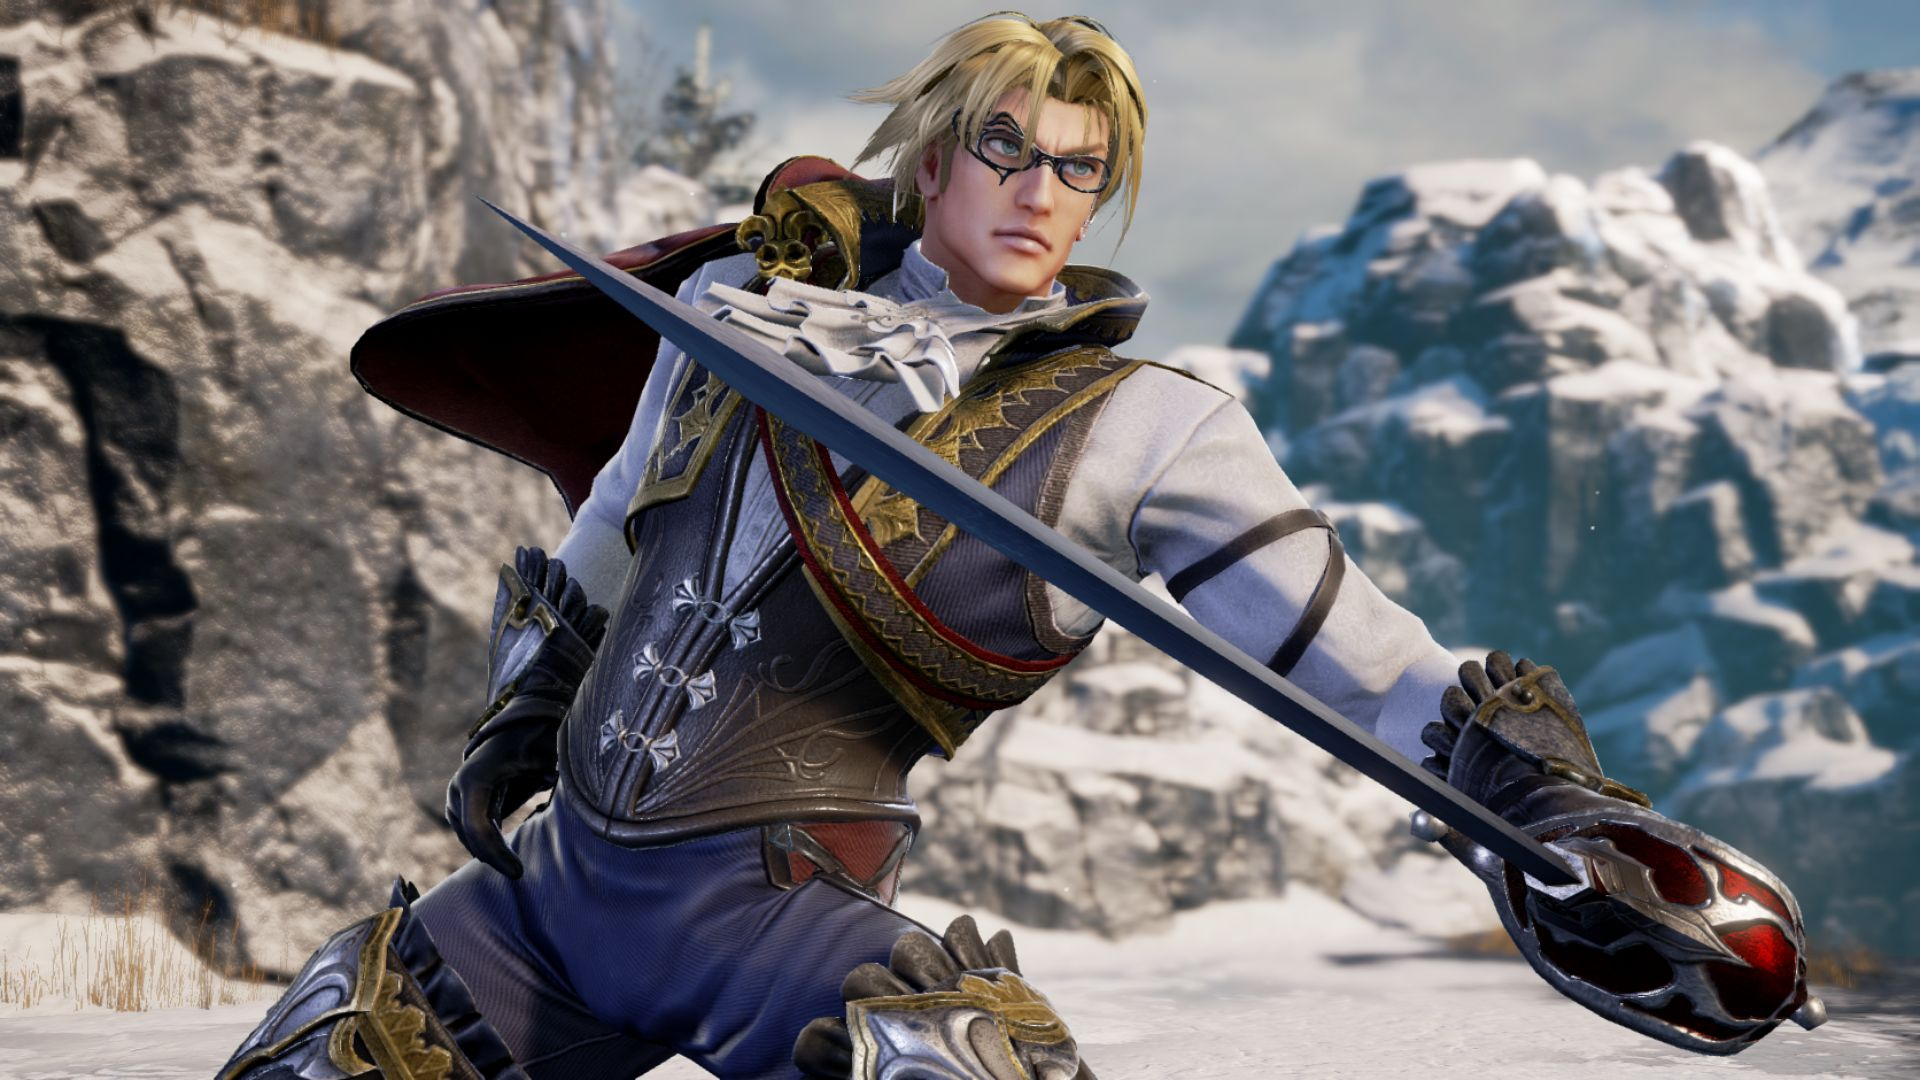 Soulcalibur 6 Guide: 11 Tips And Tricks You Need To Know